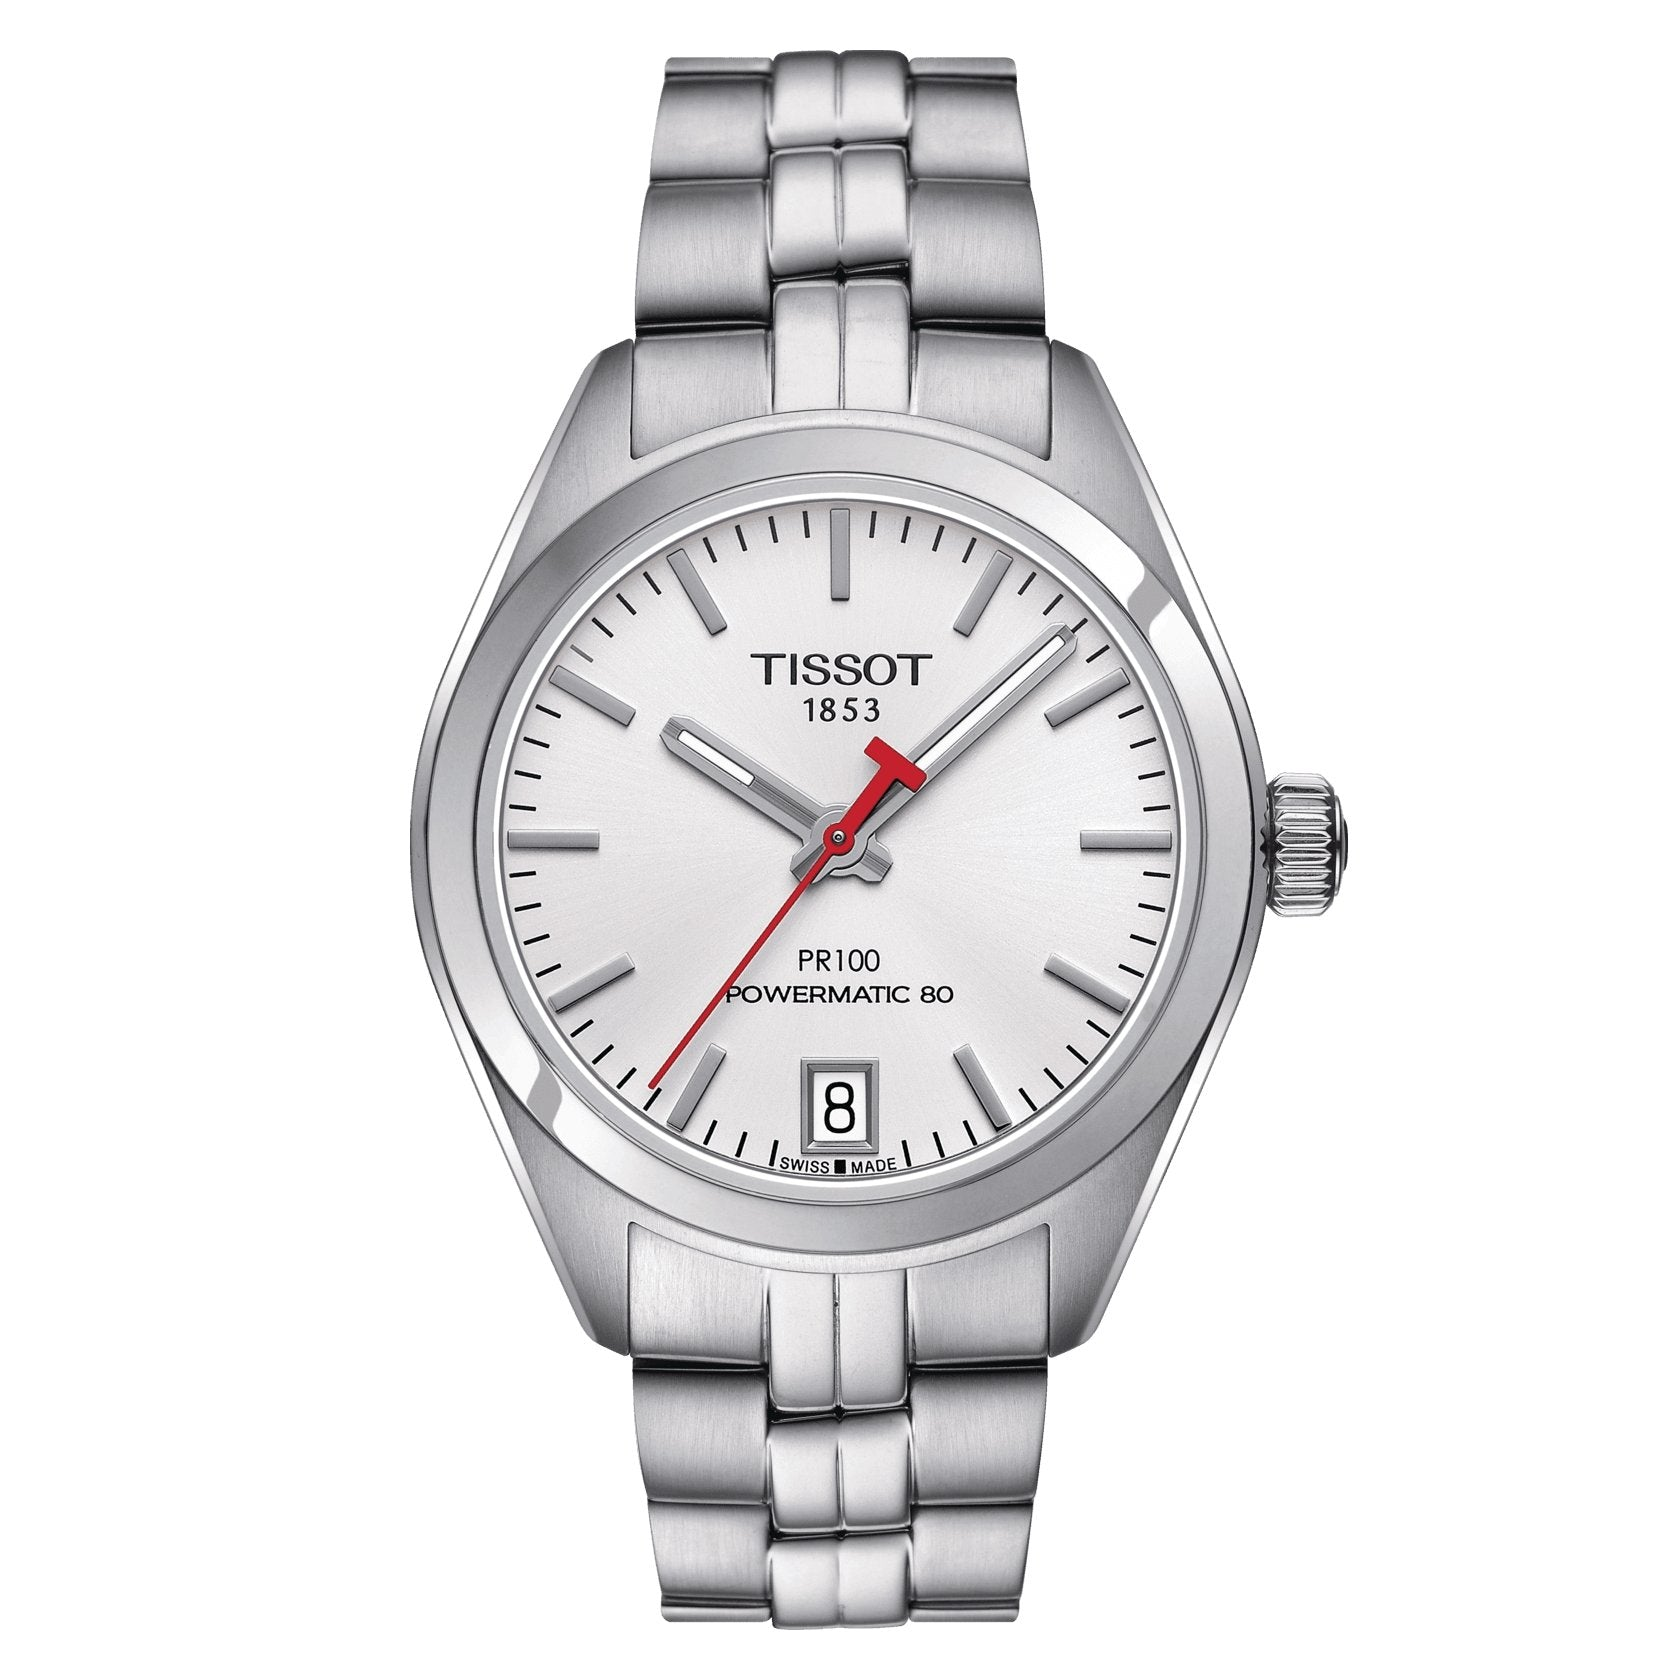 Tissot T-Classic PR 100 Powermatic 80 Asian Games Edition - Watches & Crystals